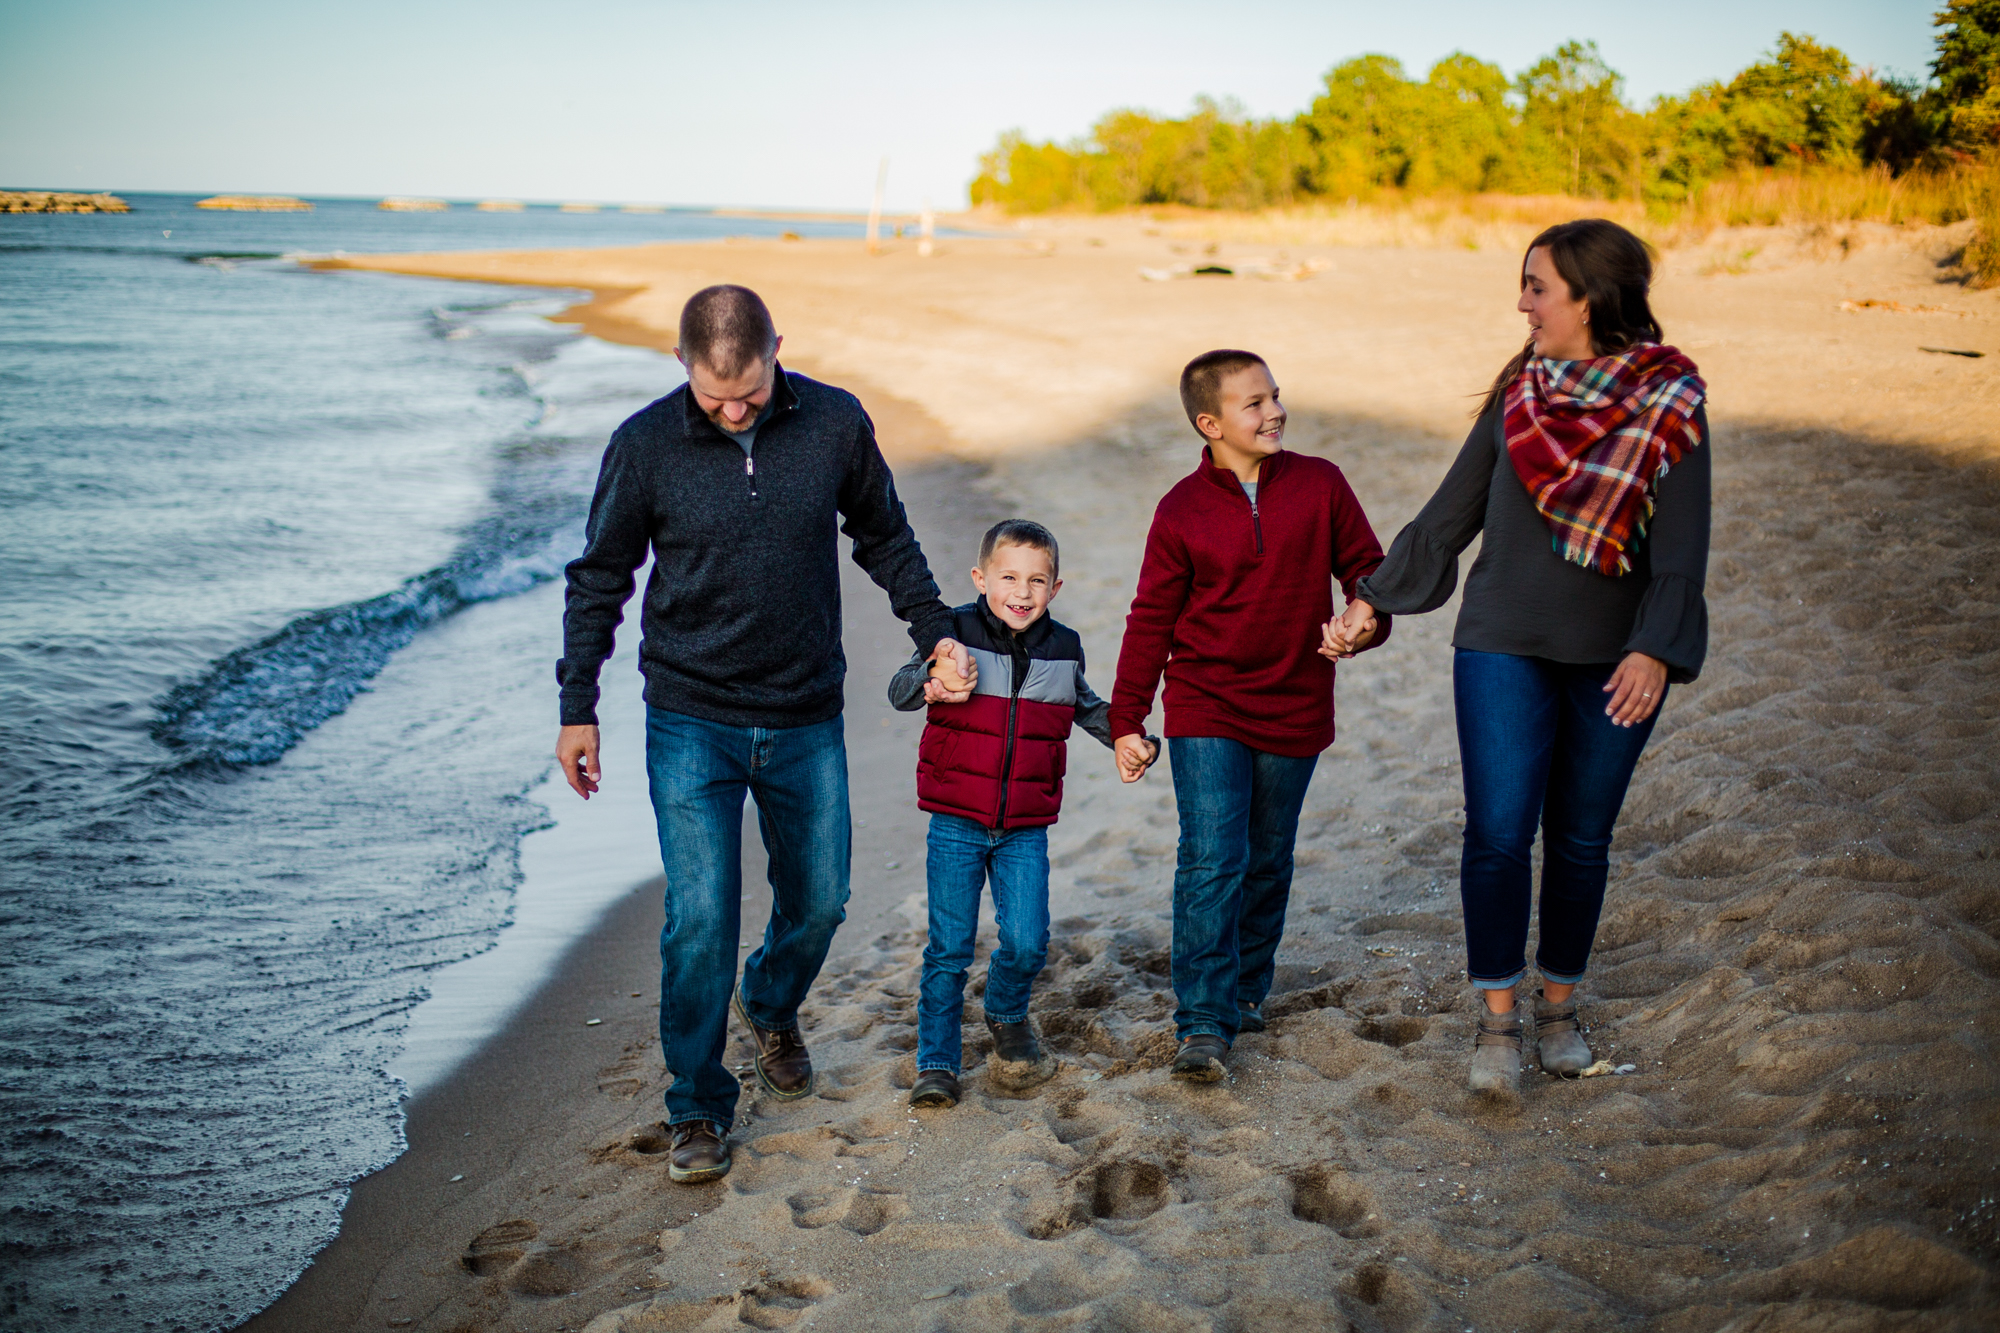 Family walks on the beach at Presque Isle State Park during portrait session